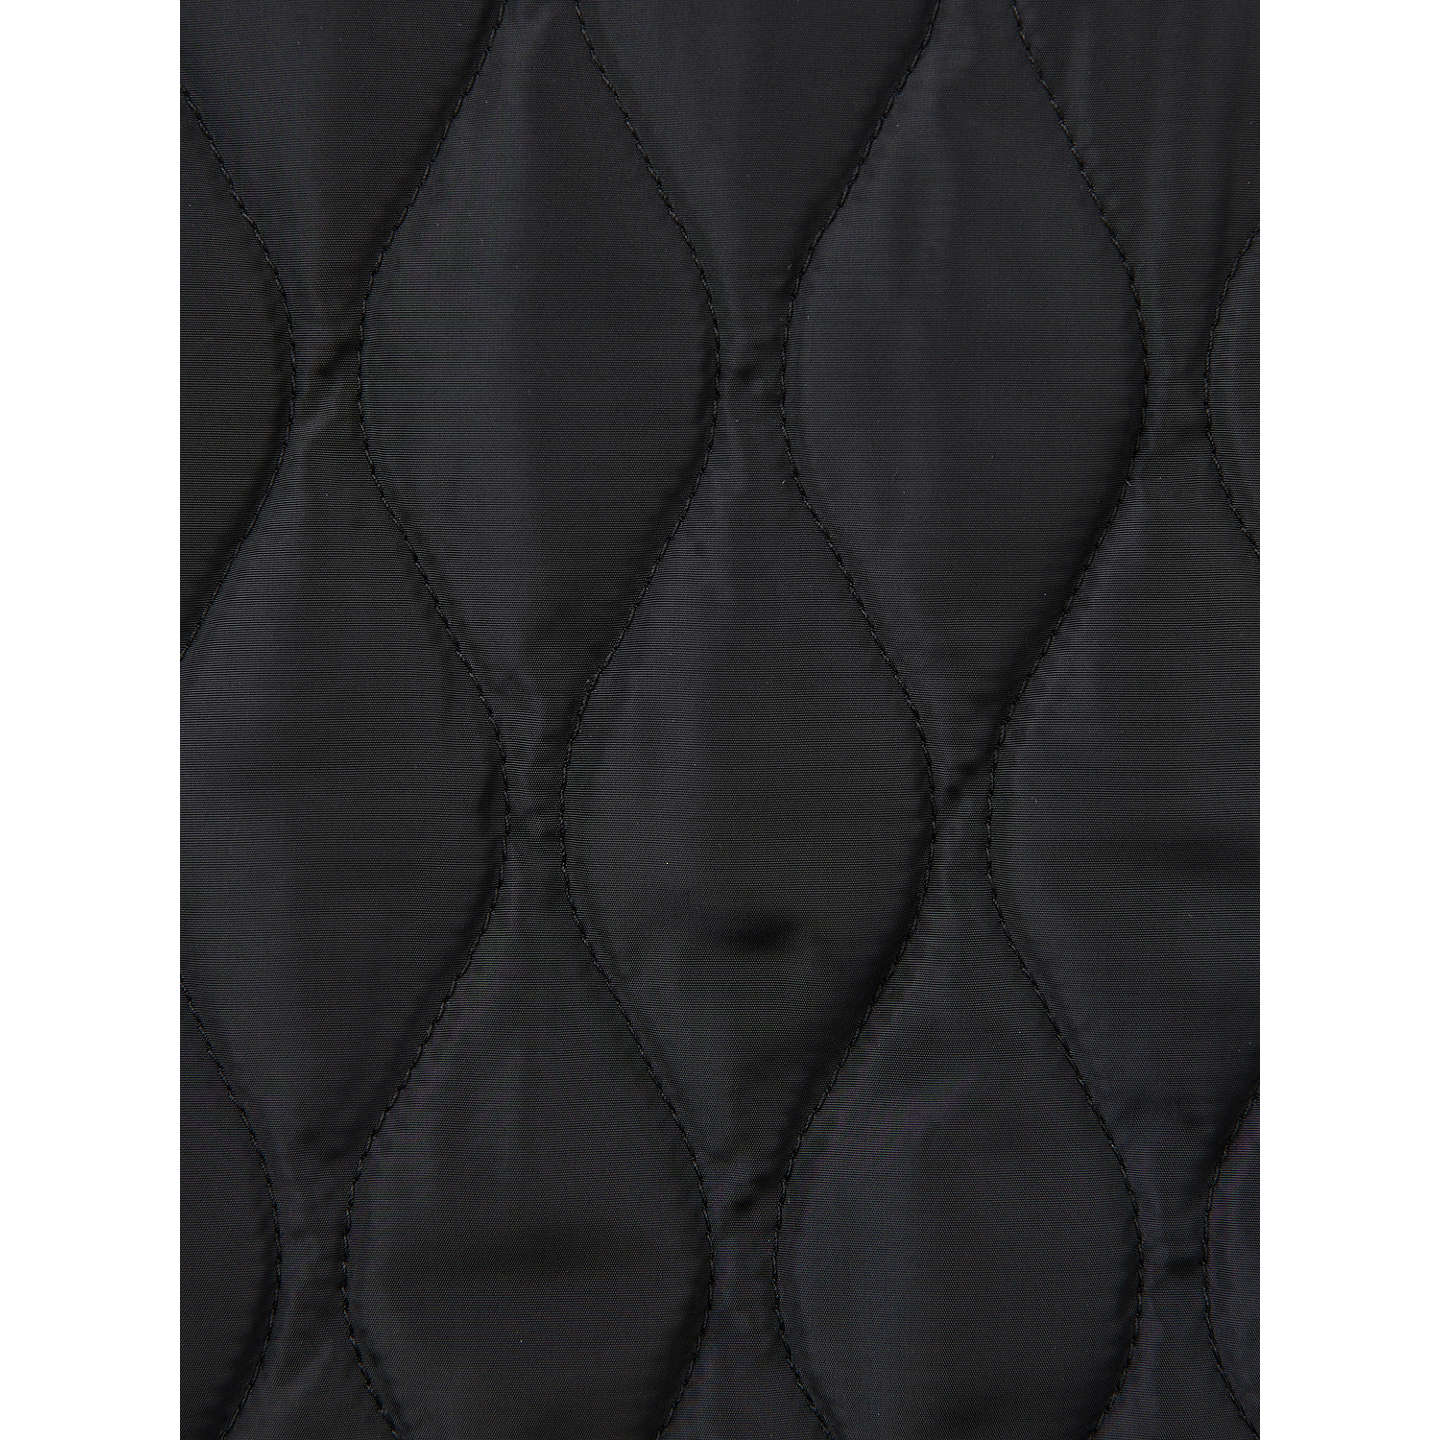 BuyJoules Braemar Quilted Gilet, Black, 10 Online at johnlewis.com